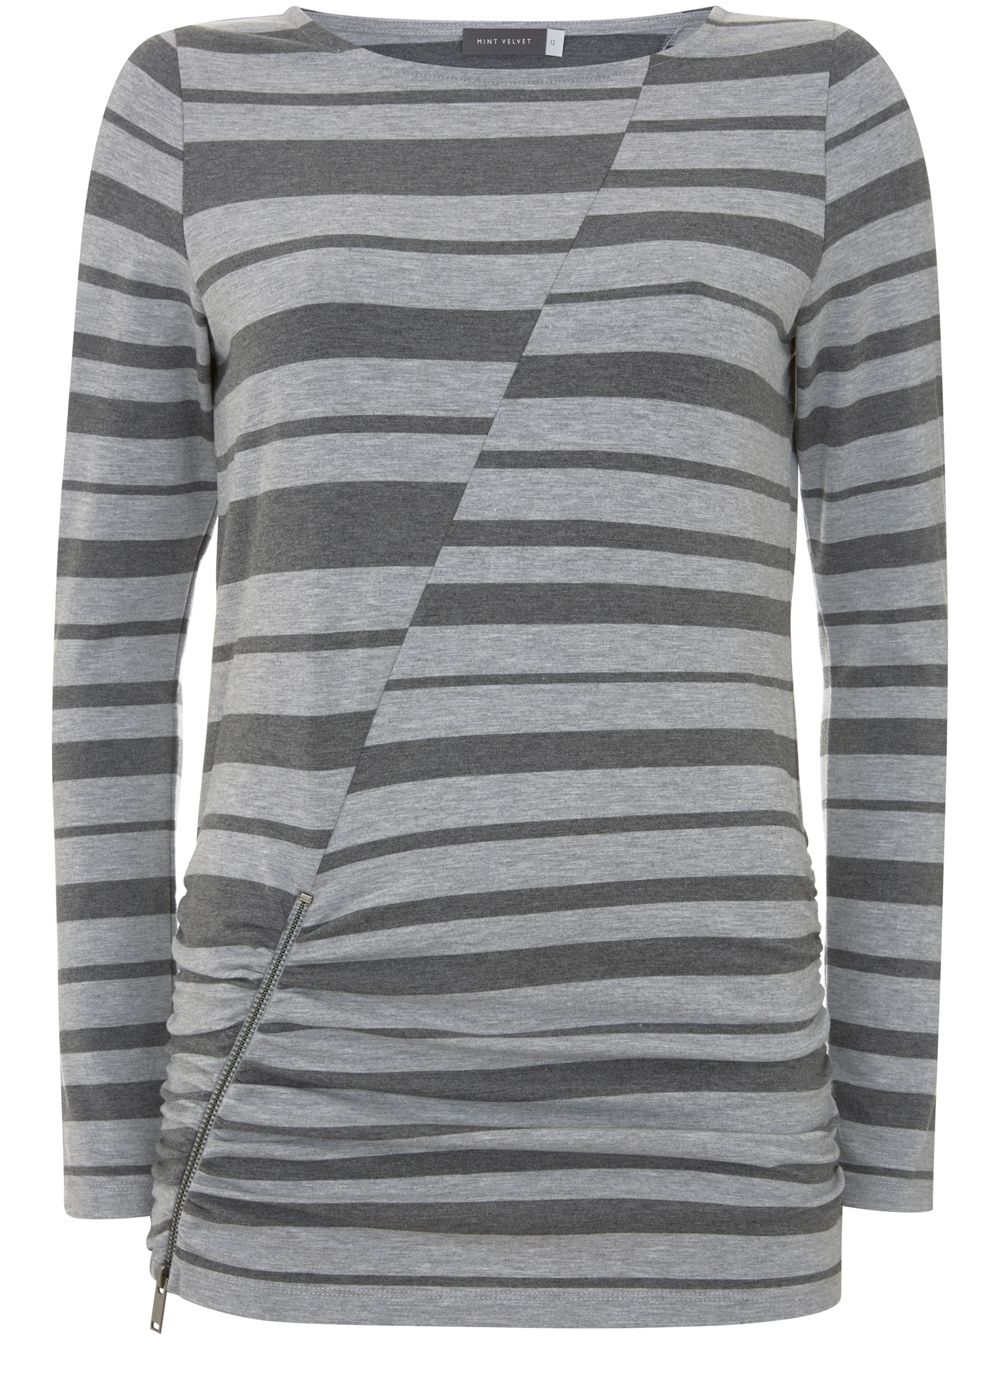 Mint Velvet Blocked Stripe Jersey Tee, Multi-Coloured